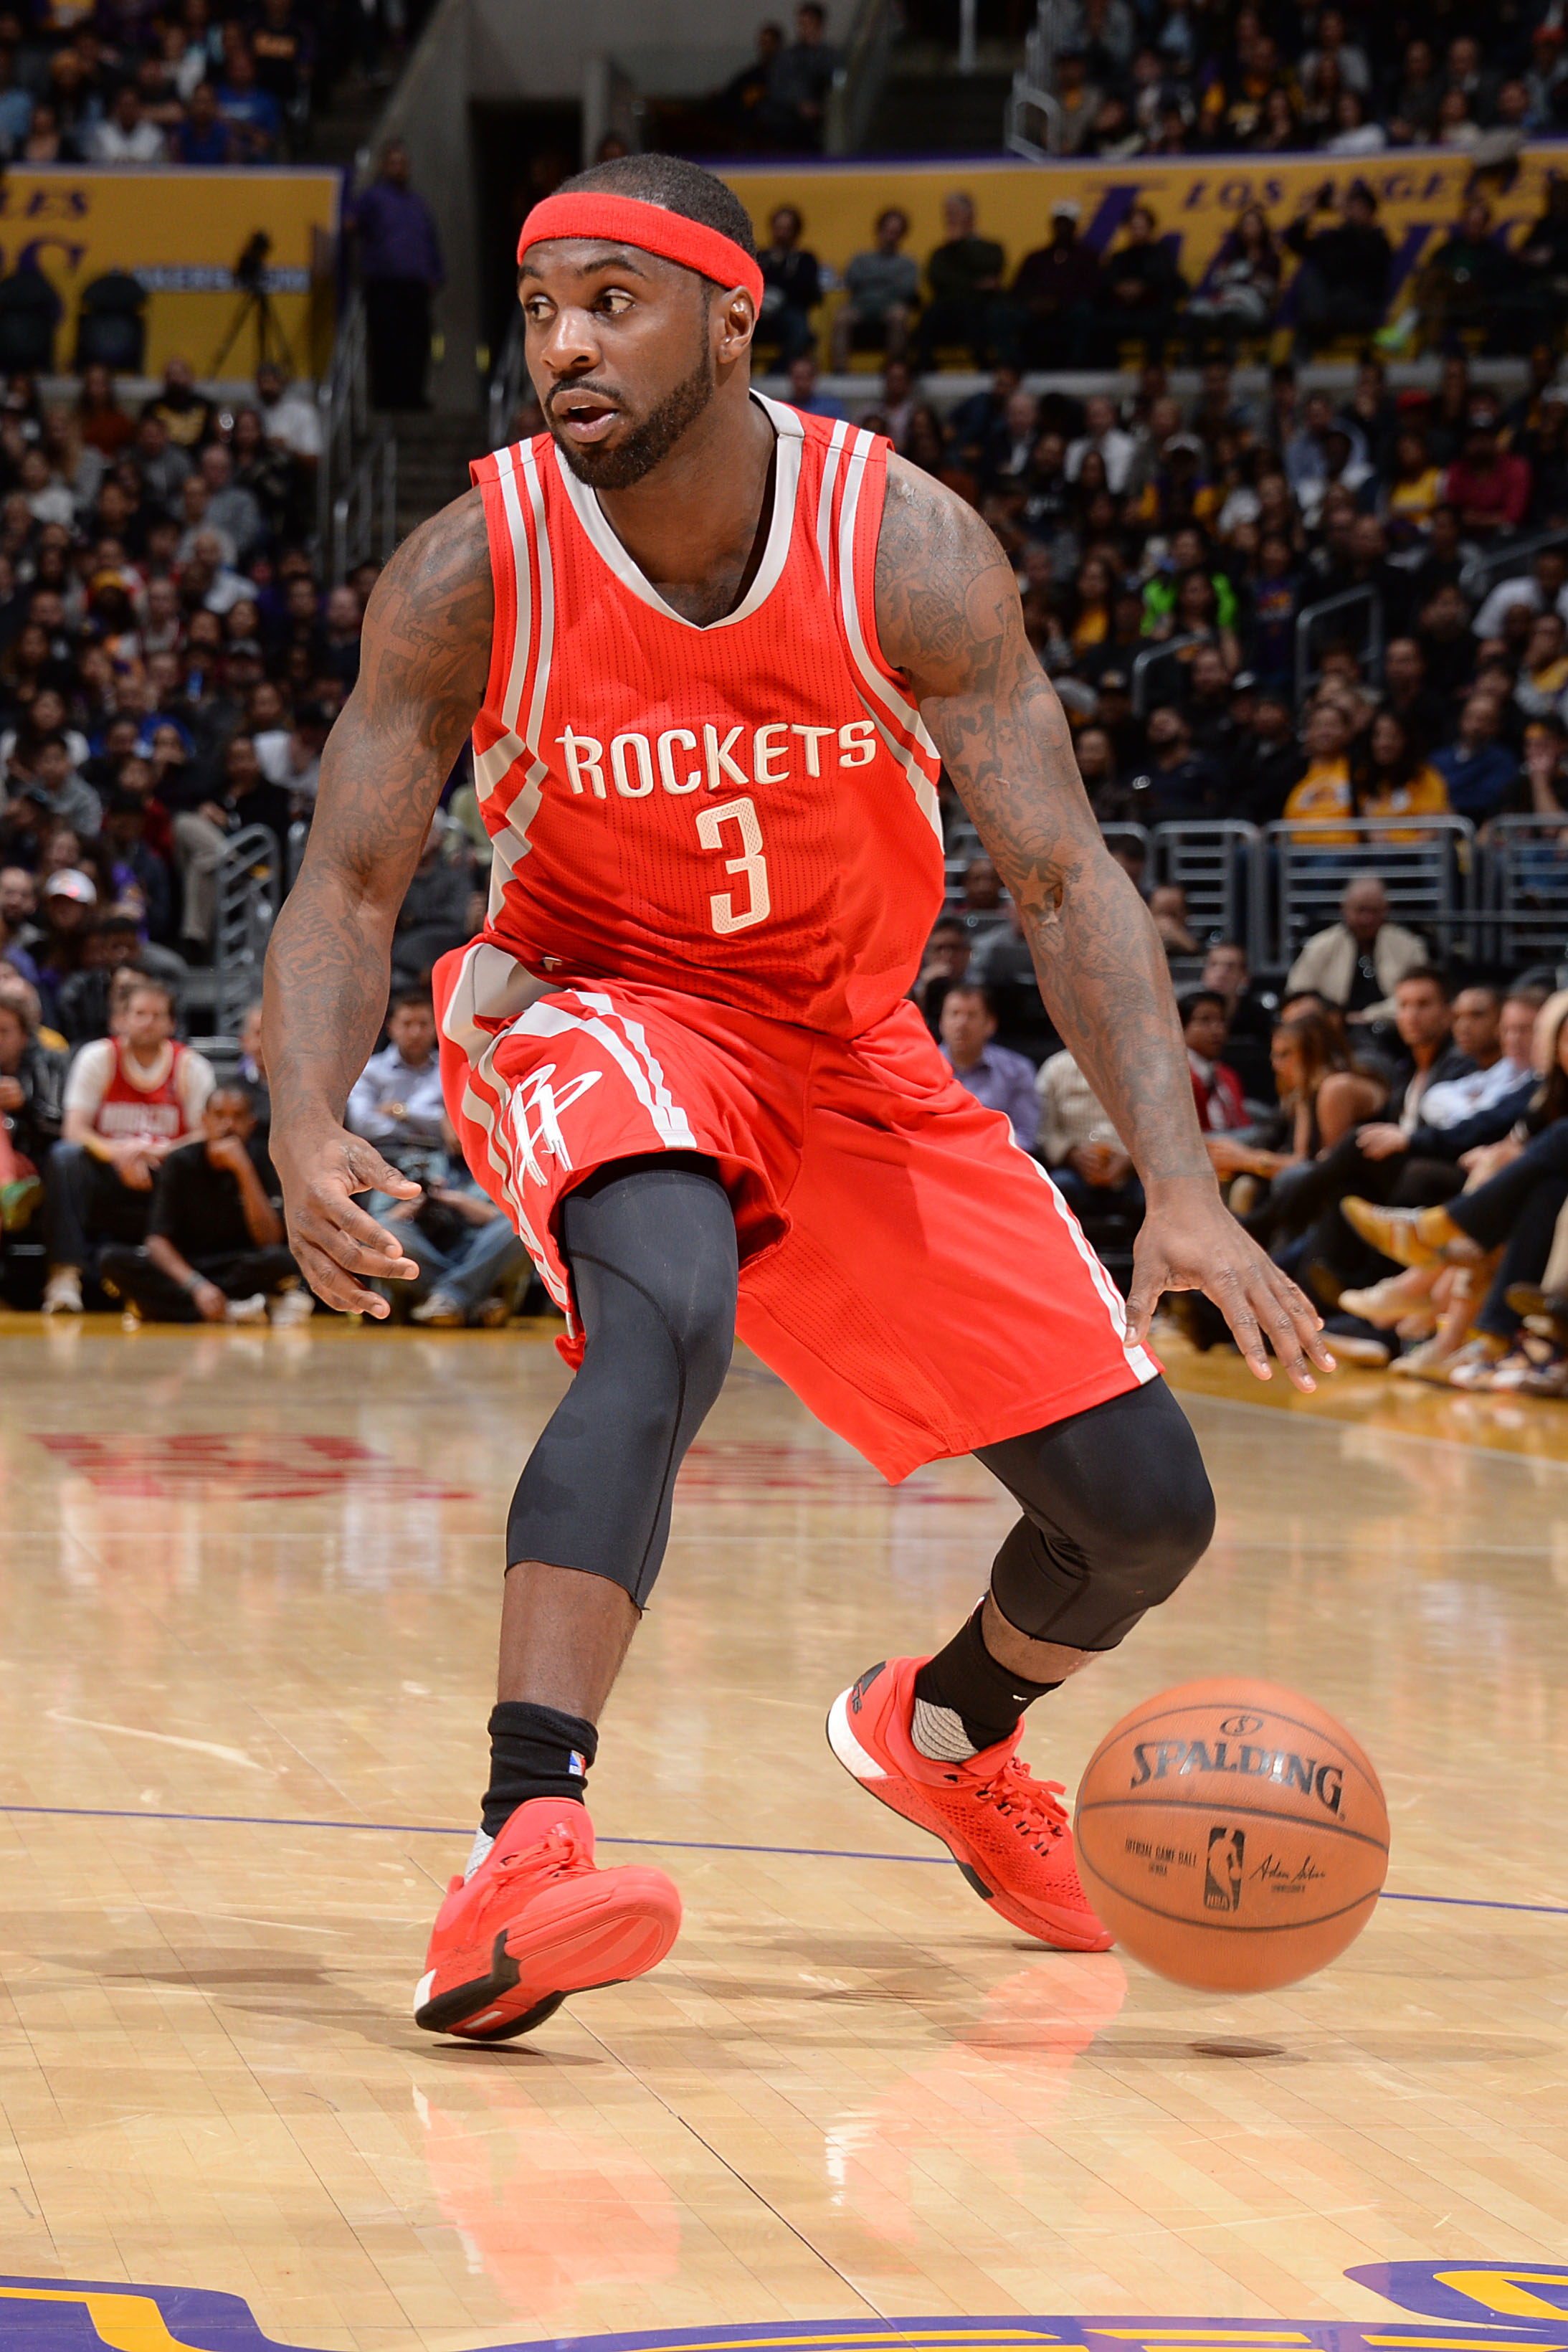 LOS ANGELES, CA - DECEMBER 17: Ty Lawson #3 of the Houston Rockets handles the ball during the game against the Los Angeles Lakers on December 17, 2015 at STAPLES Center in Los Angeles, California. (Photo by Andrew D. Bernstein/NBAE via Getty Images)